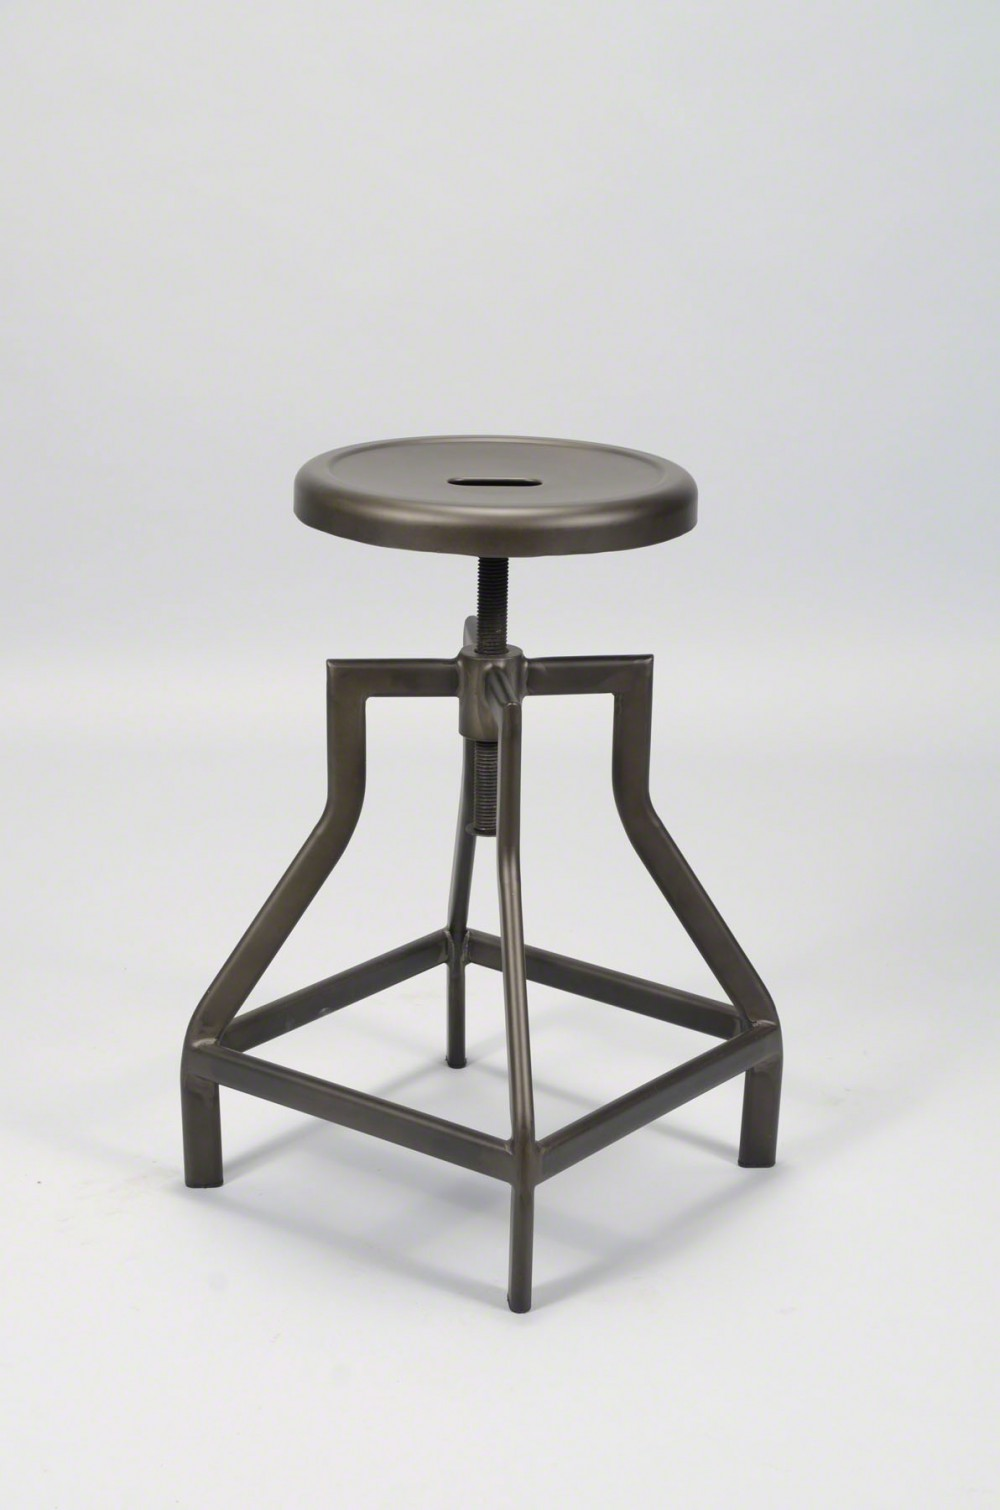 Barhocker metall industrie hocker metall industriedesign for Barhocker industriedesign